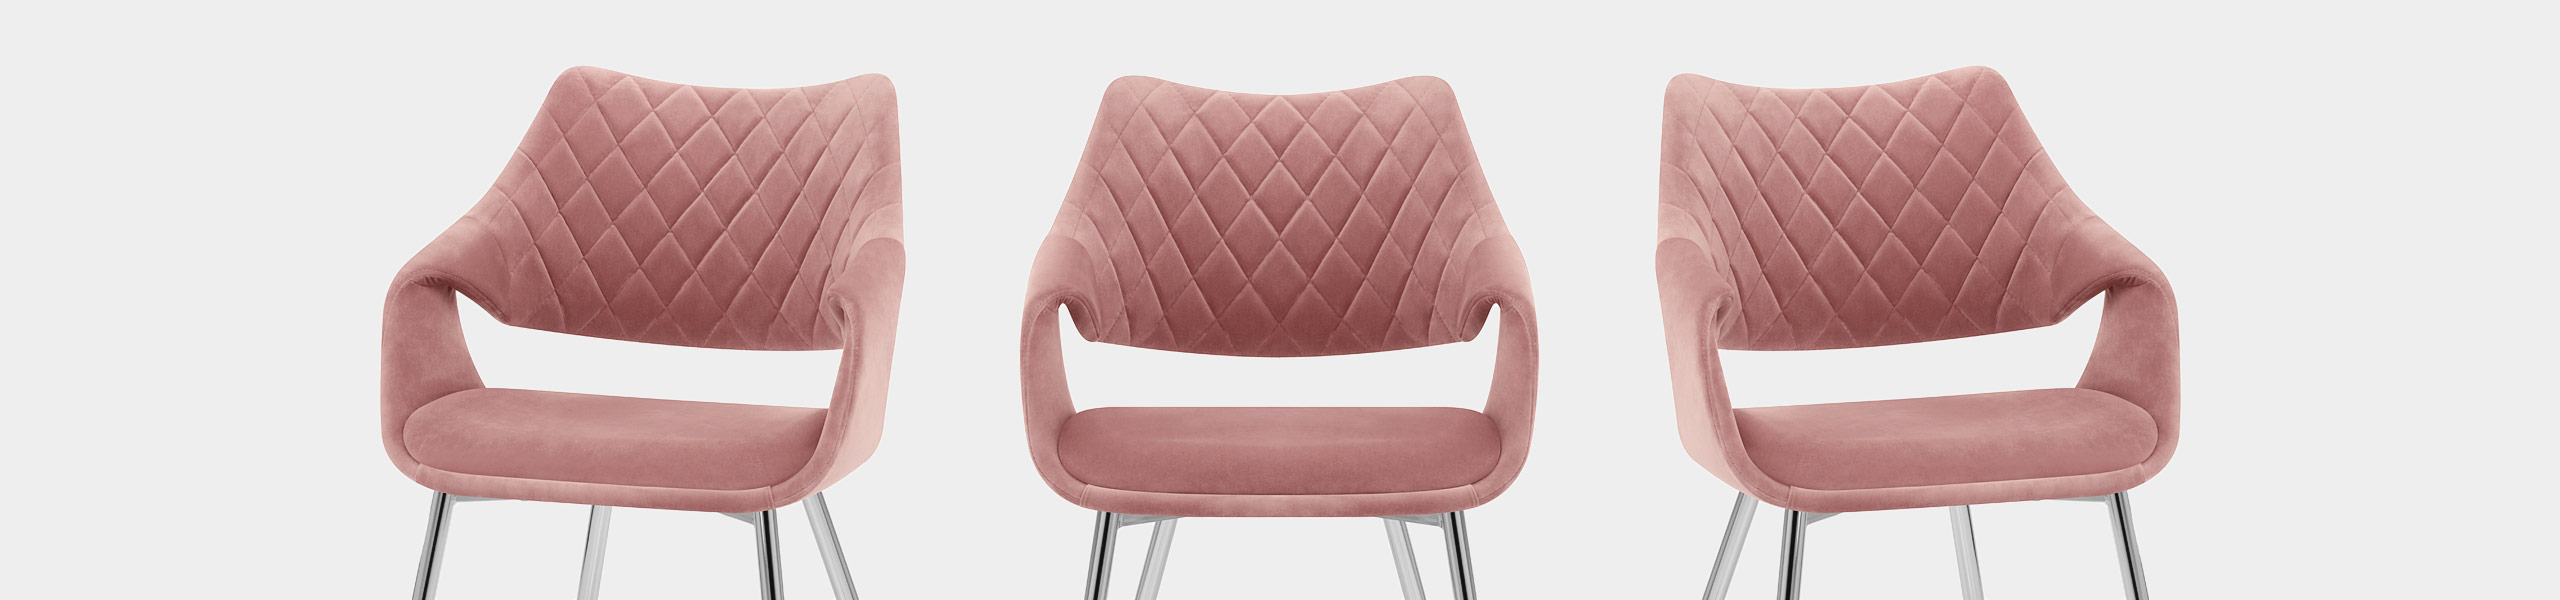 Fairfield Chrome Chair Pink Velvet Video Banner